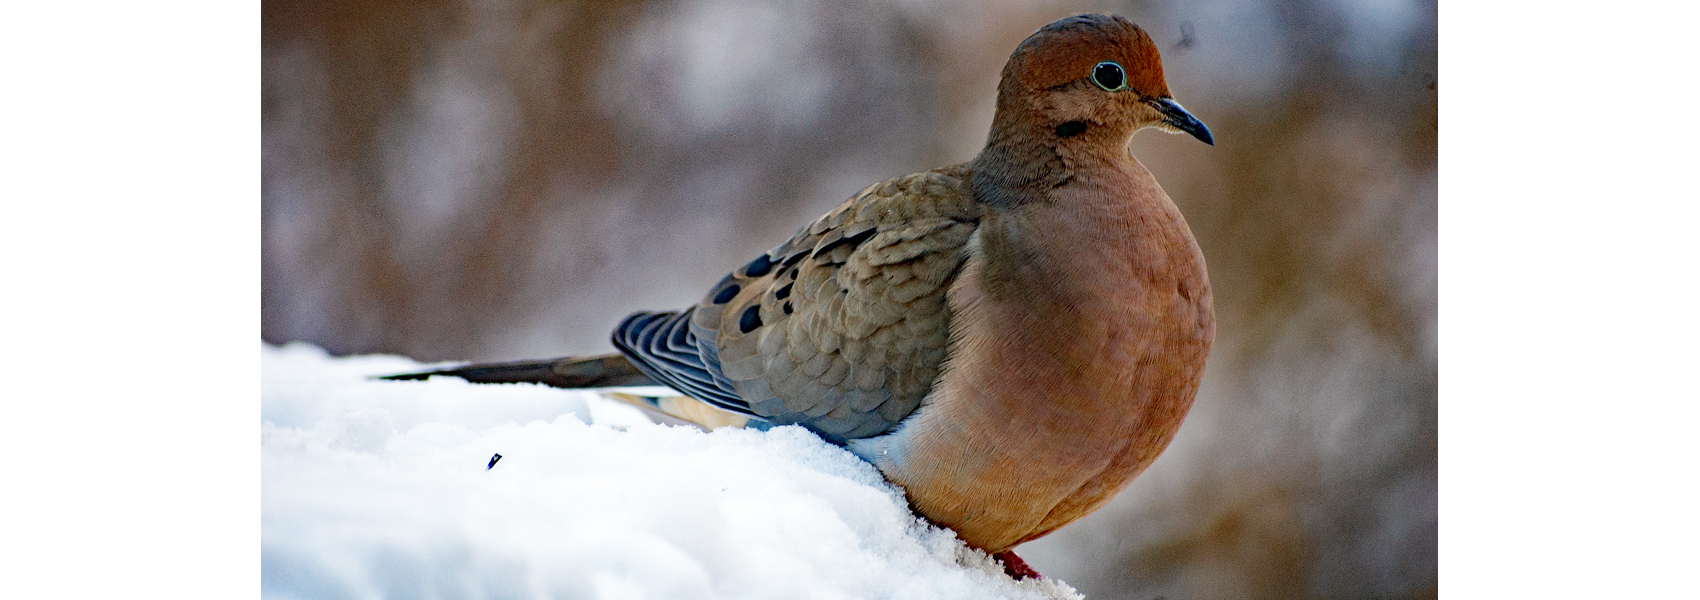 Mourning dove stands in snow